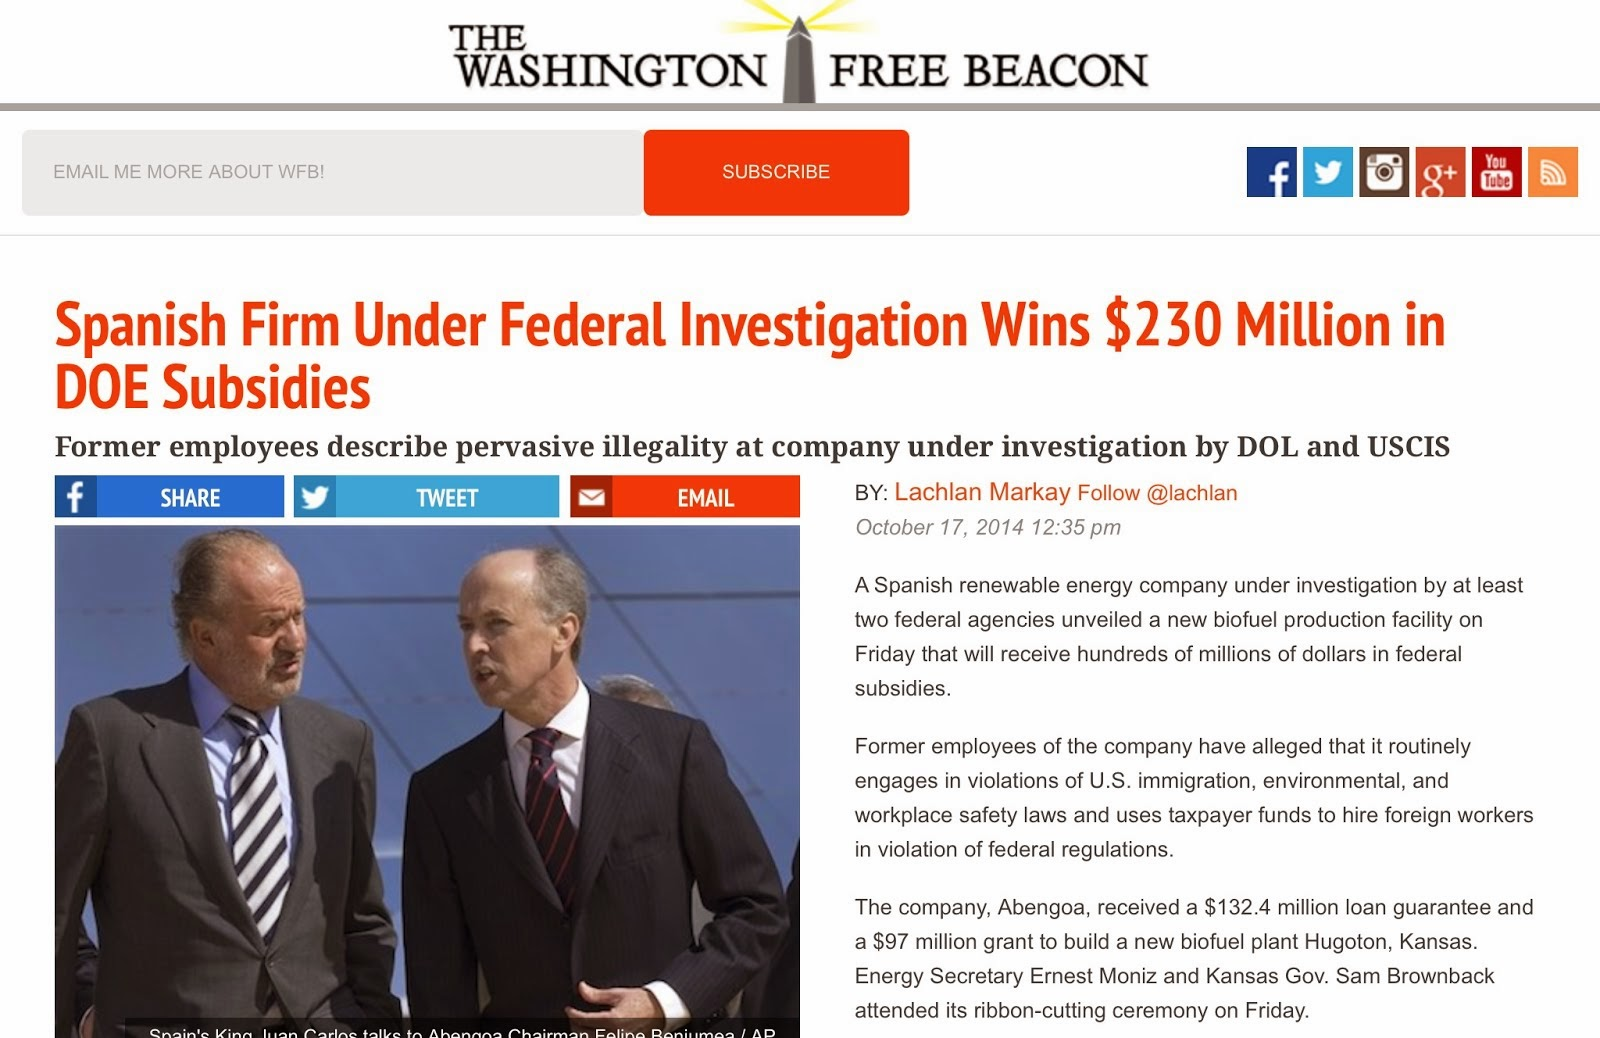 October 17, 2014: @ the Washington Free Beacon Exposes Abengoa Again